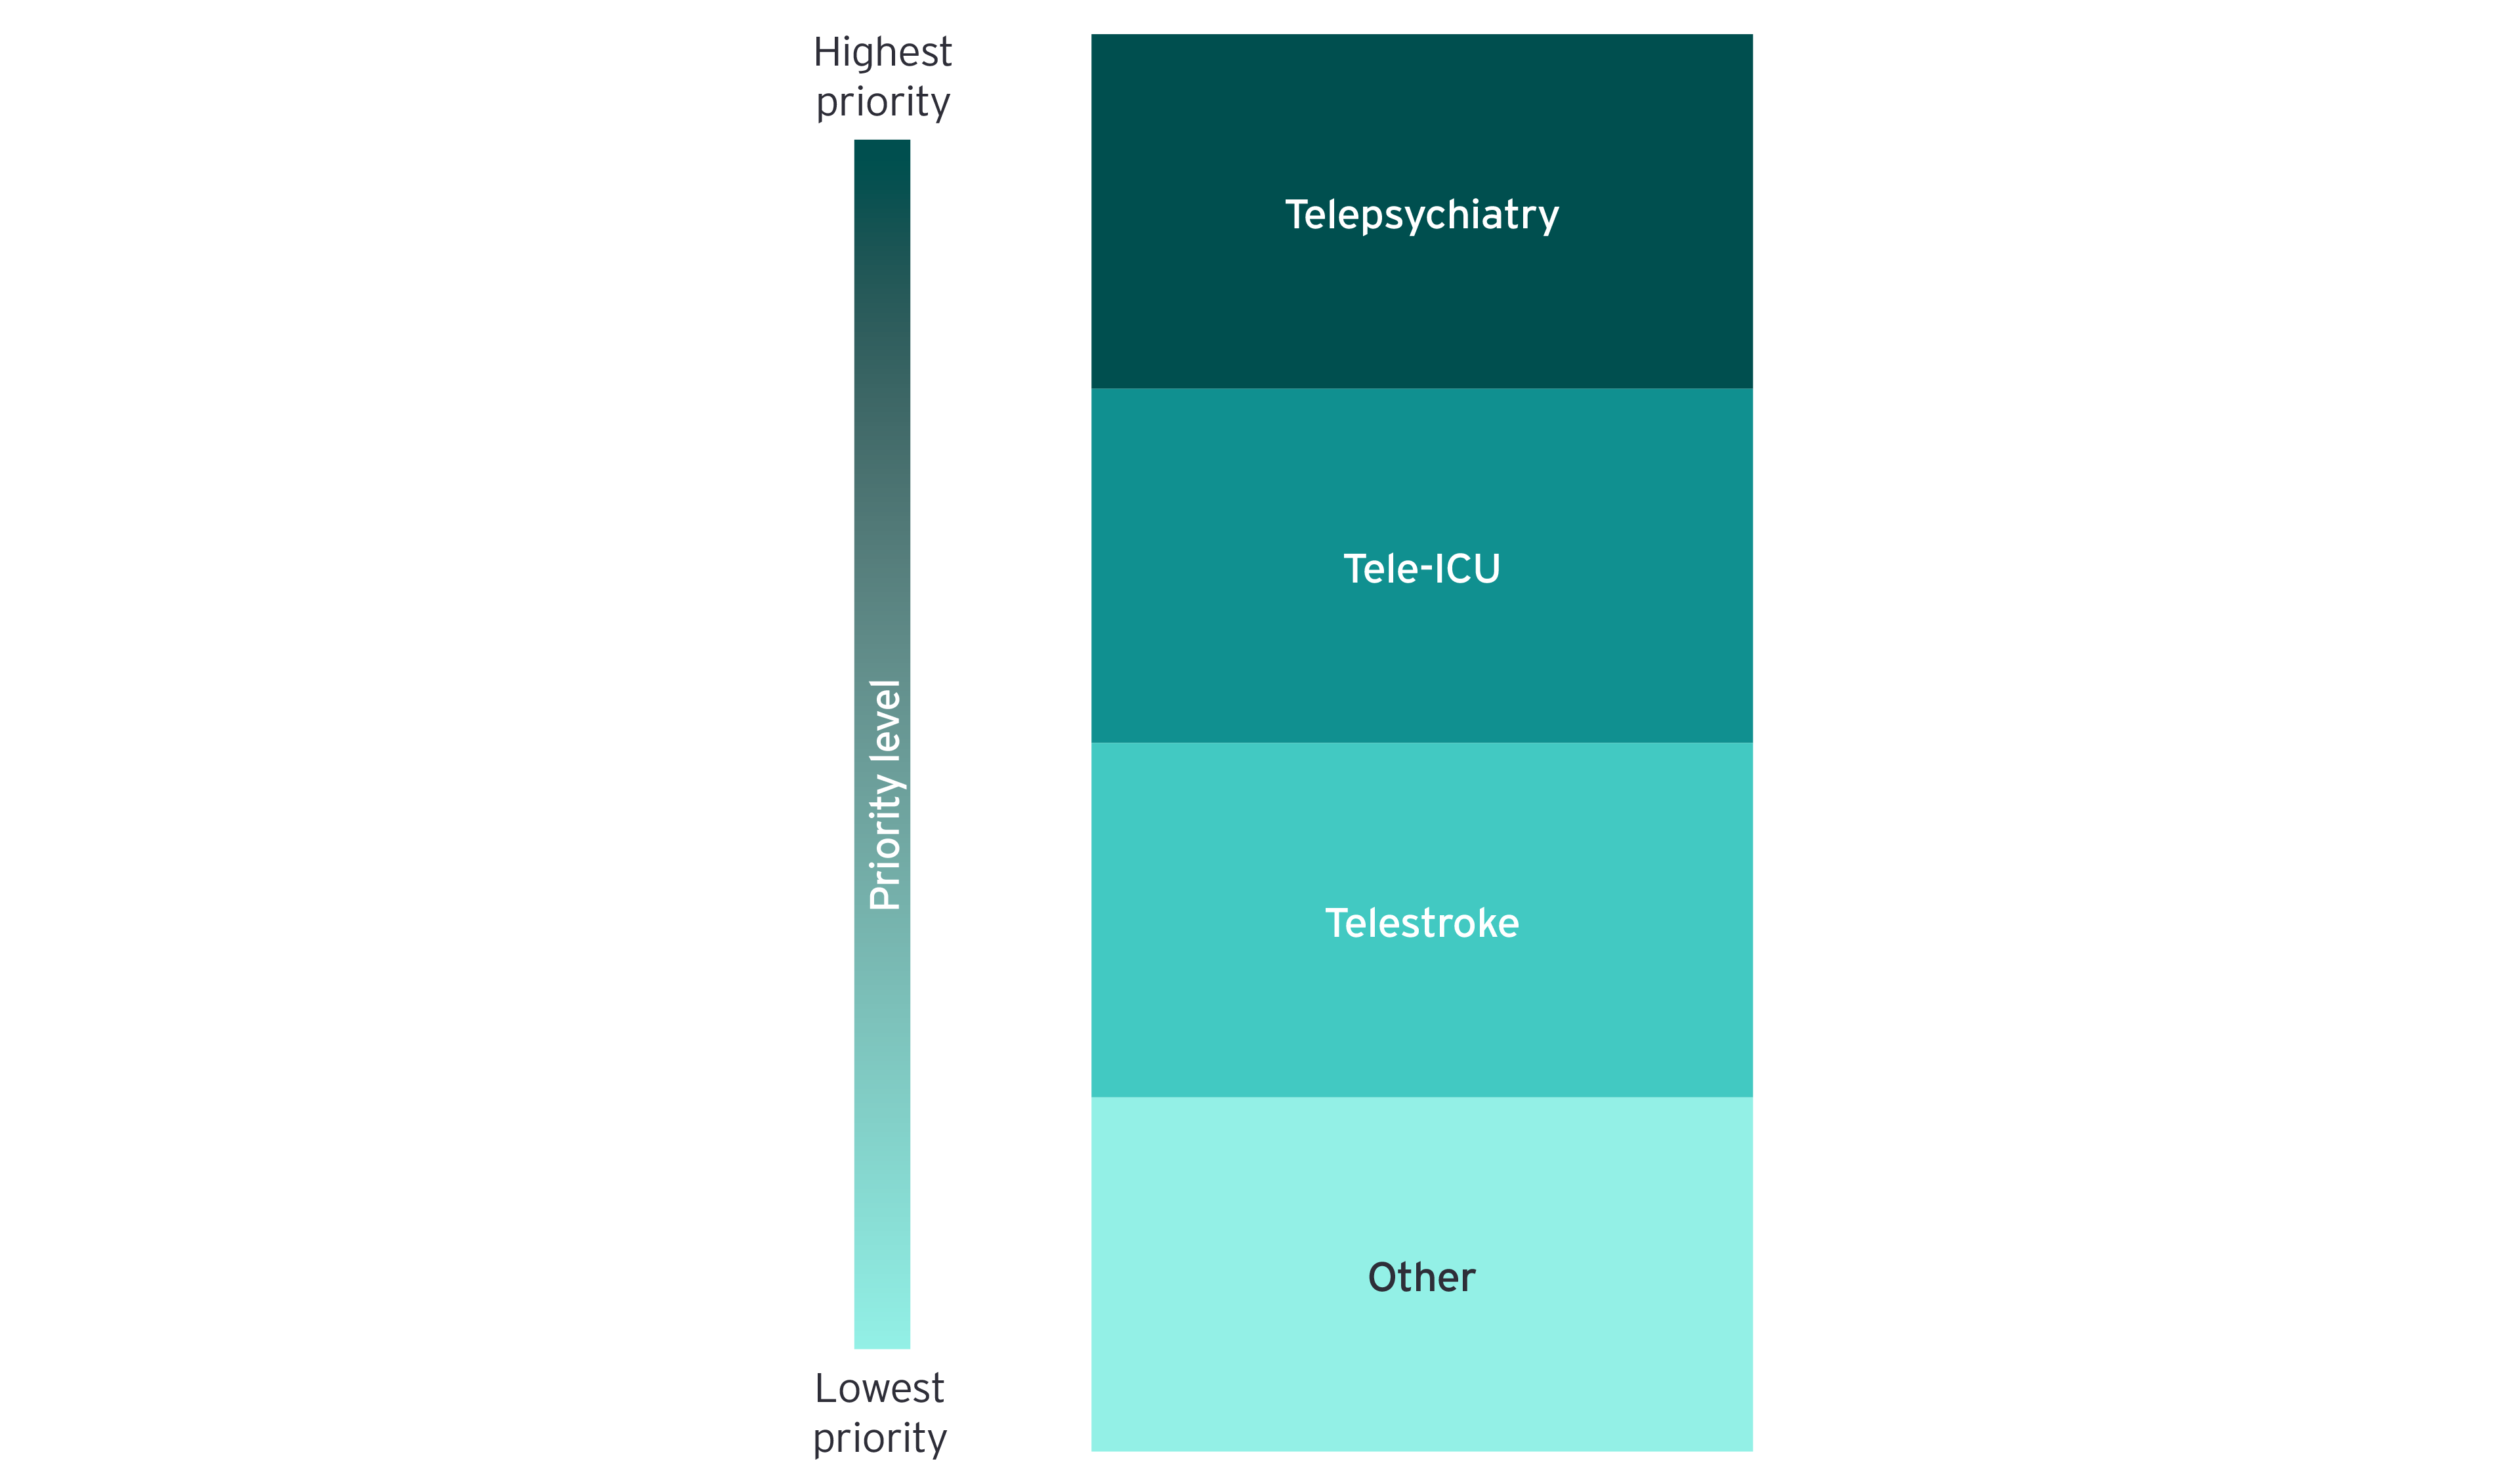 Chart: highest priority to lowest - Telepsychiatry, Tele-ICU, Telestroke and Other